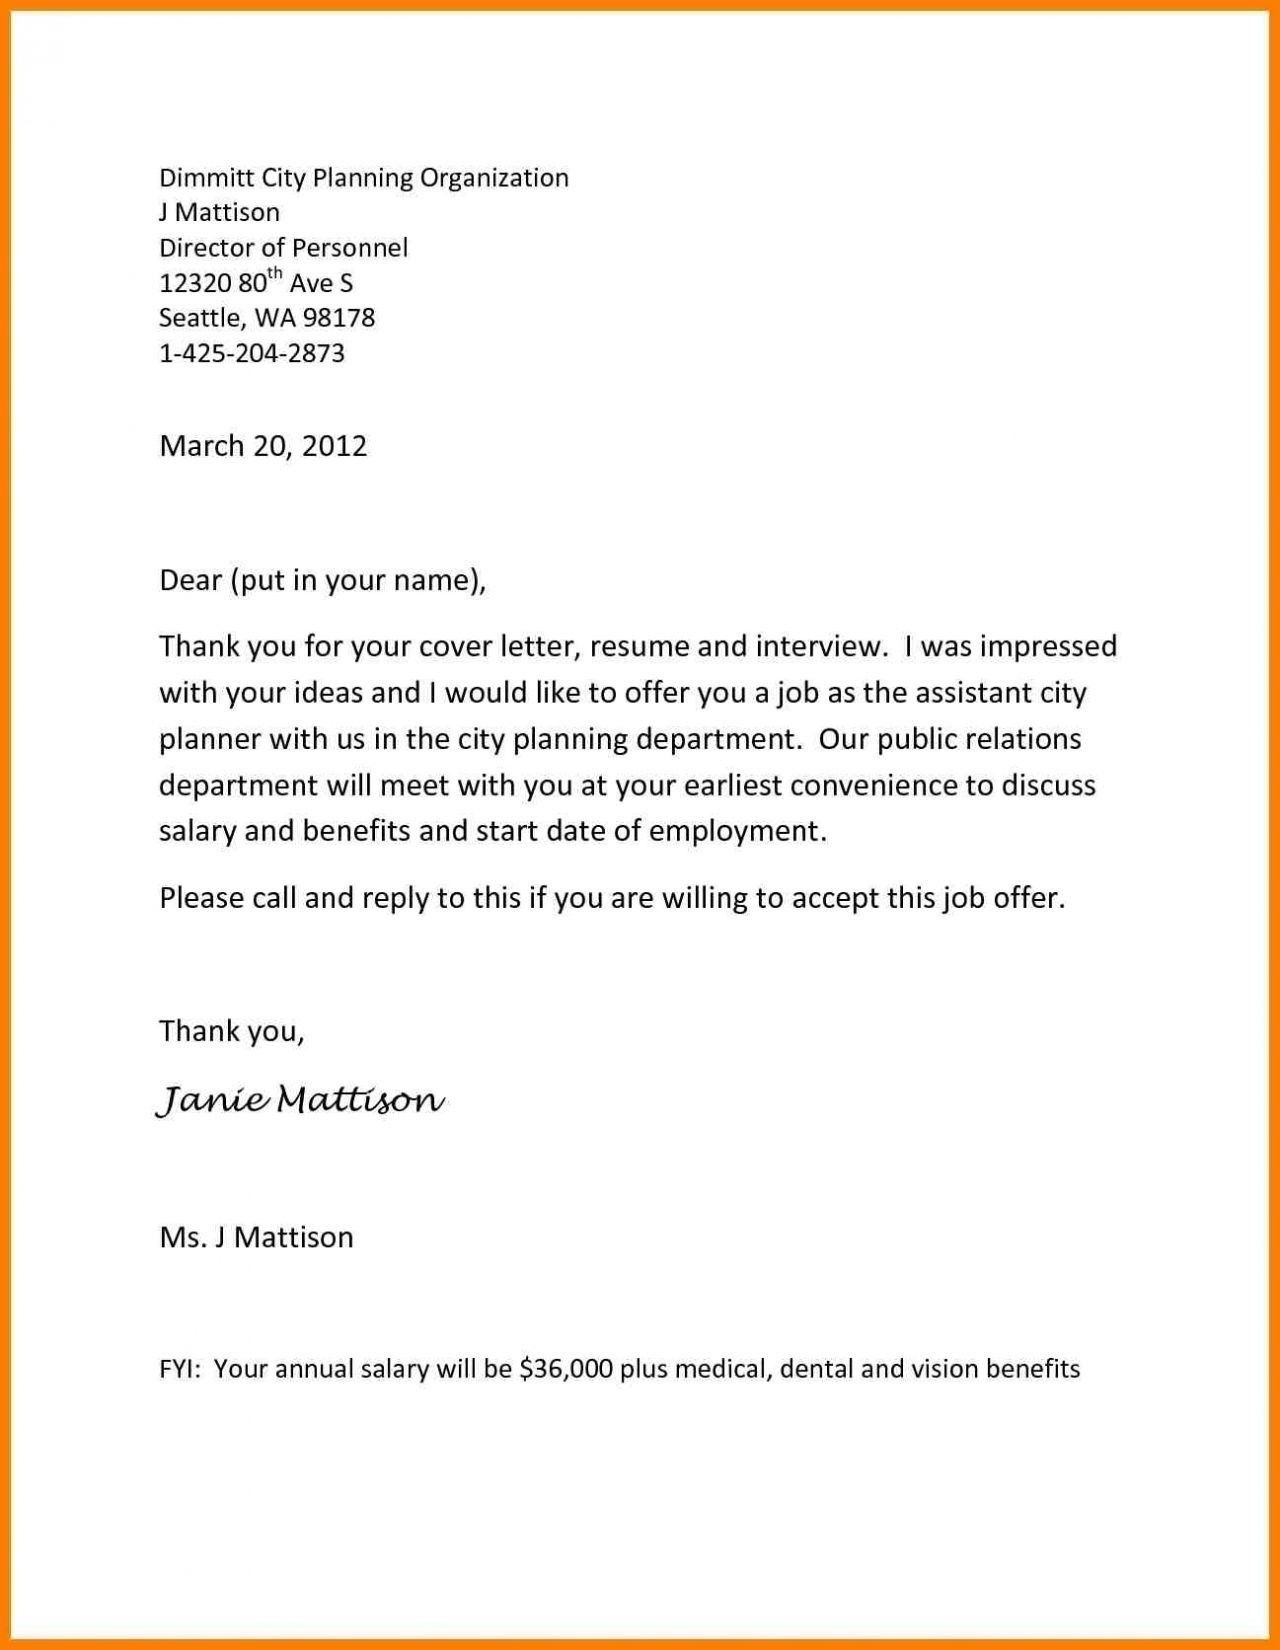 Unique Sample Letter To Accept Job Offer With Images Cover